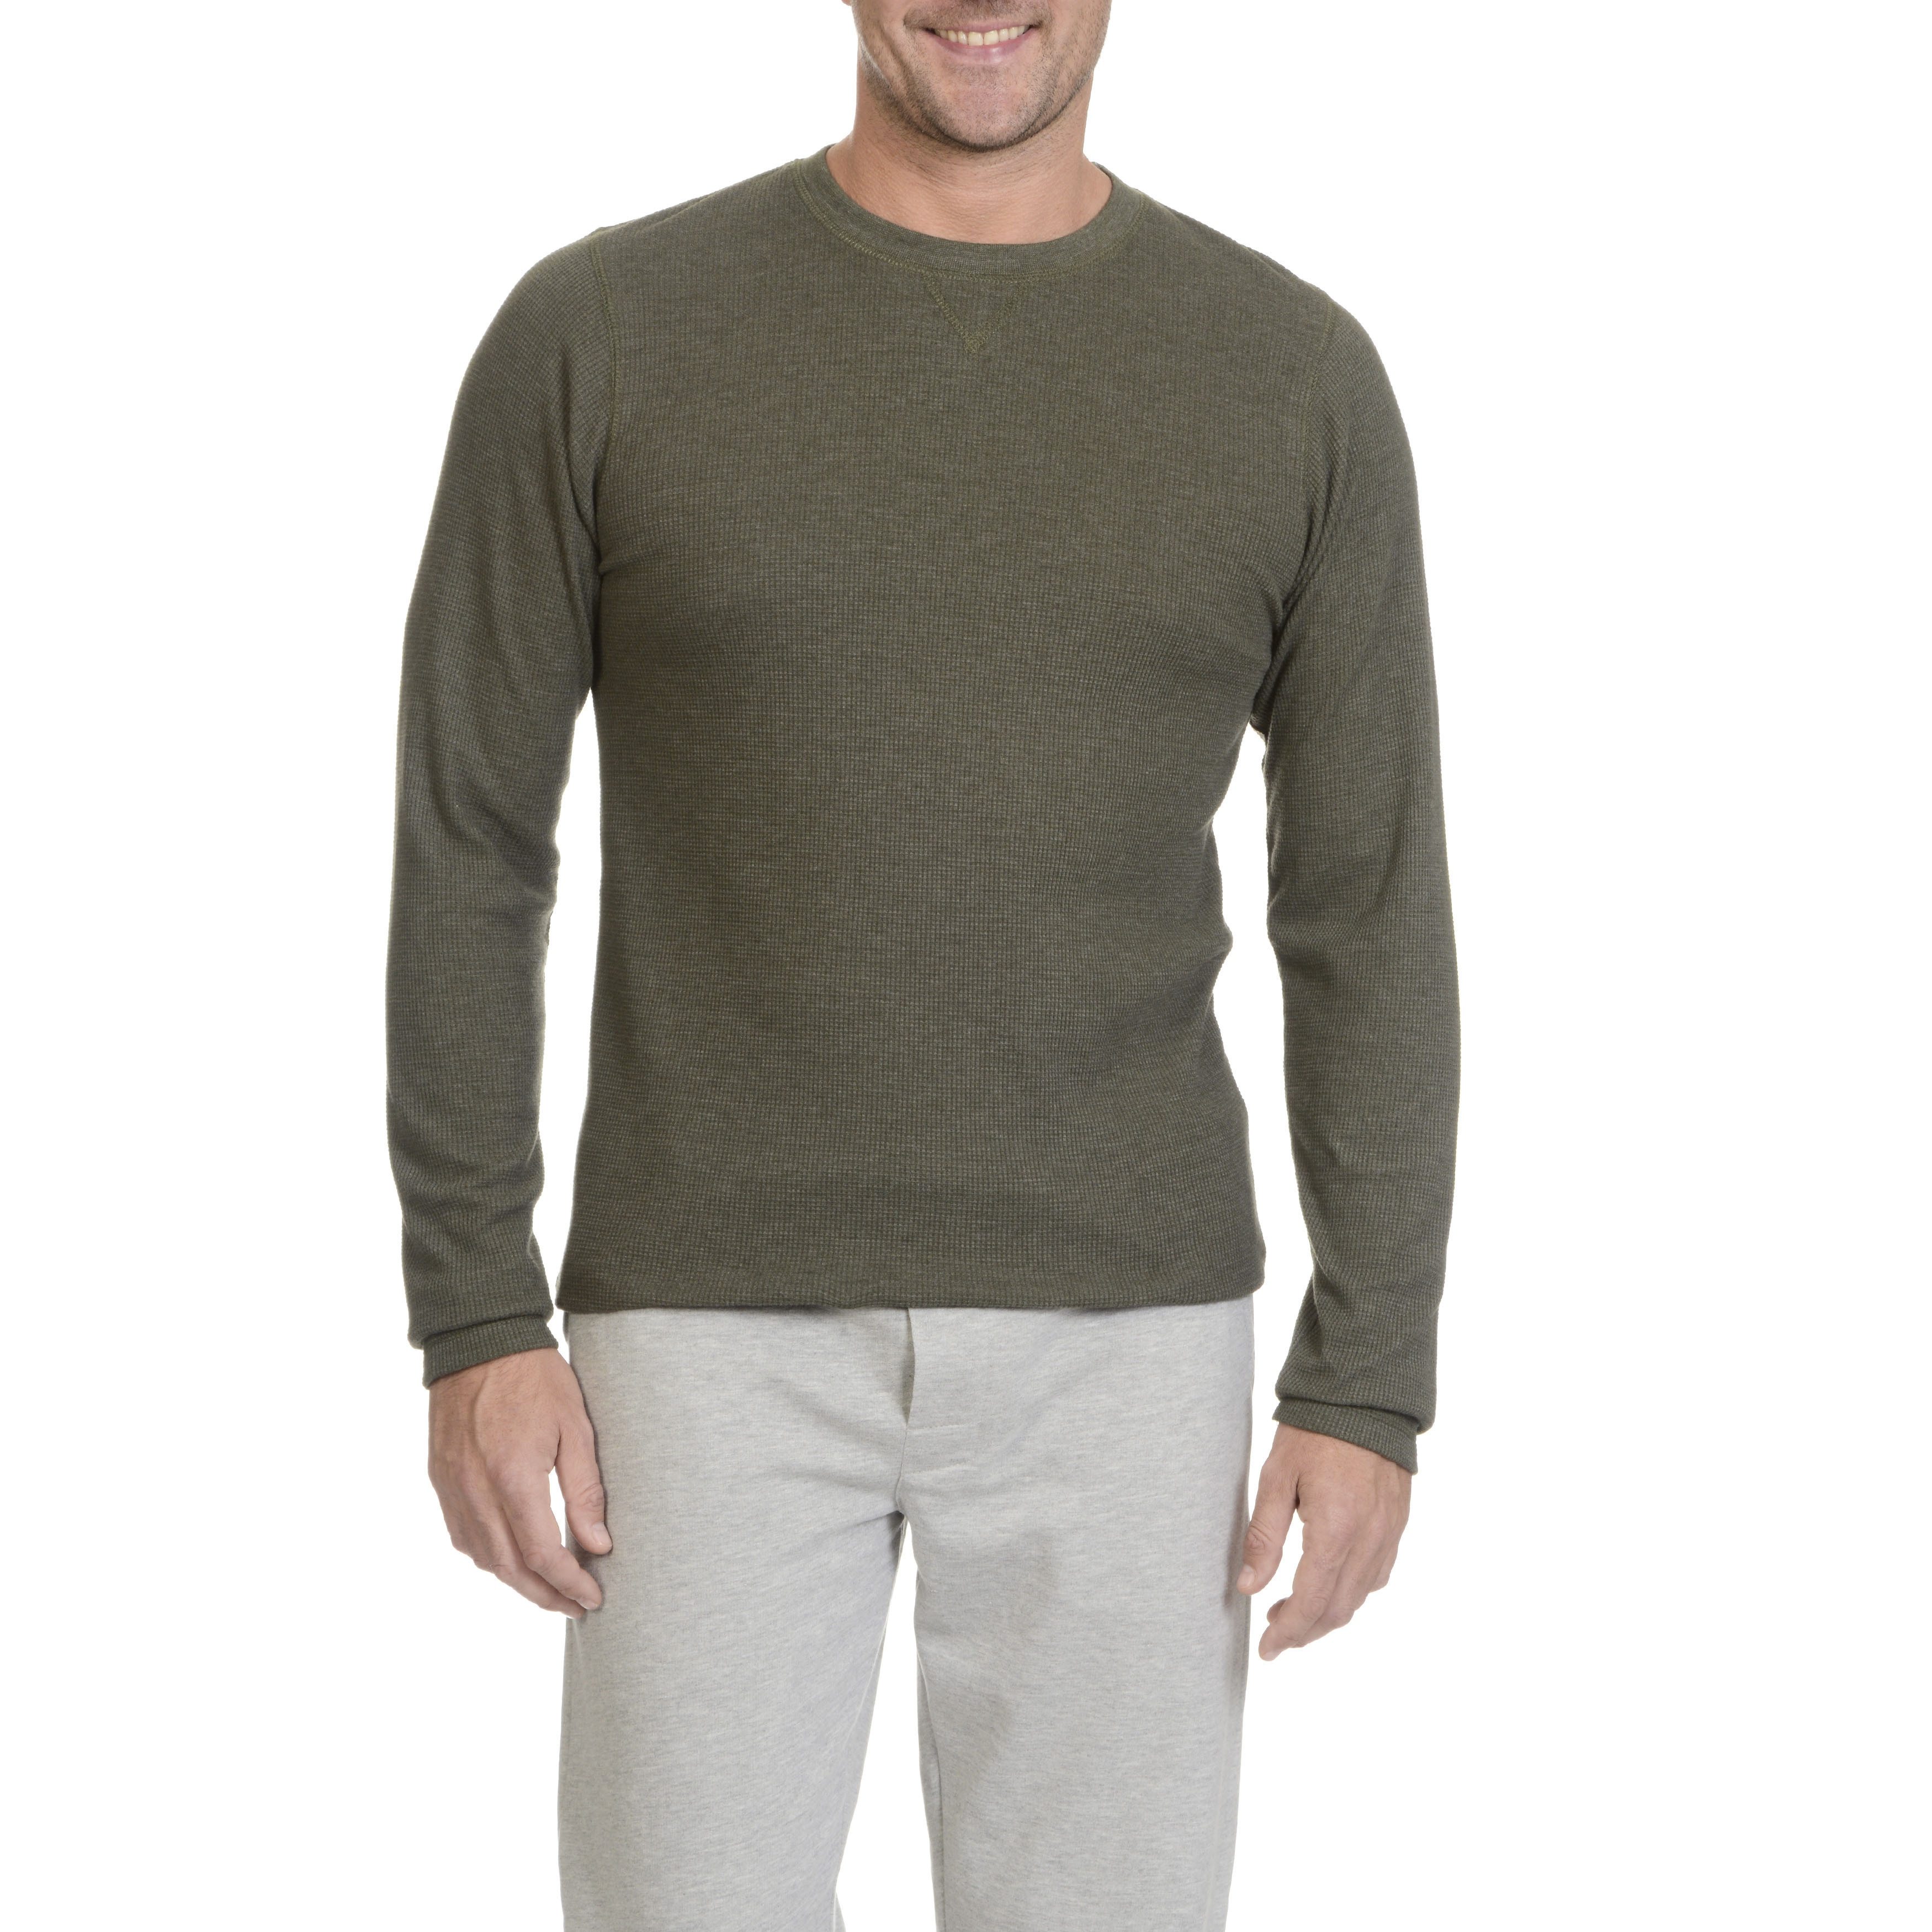 NEW CLUB ROOM WAFFLE WASHED CREW NECK LONG SLEEVE THERMAL SHIRT